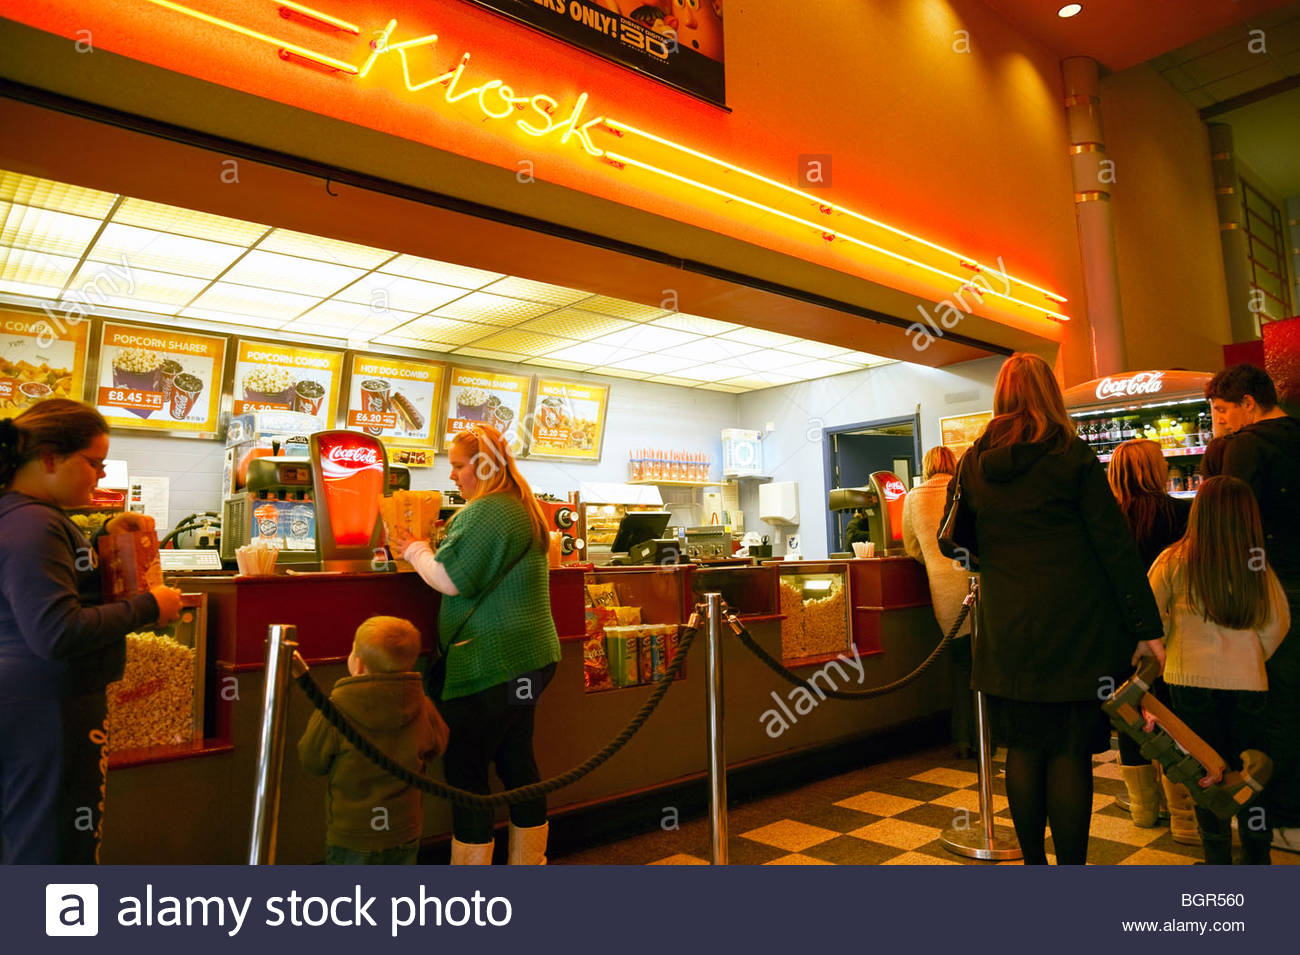 Cinema kiosk selling popcorn, coca cola and hot drinks, Gloucester, UK. People queuing at shop inside cinema. High Stock Photo